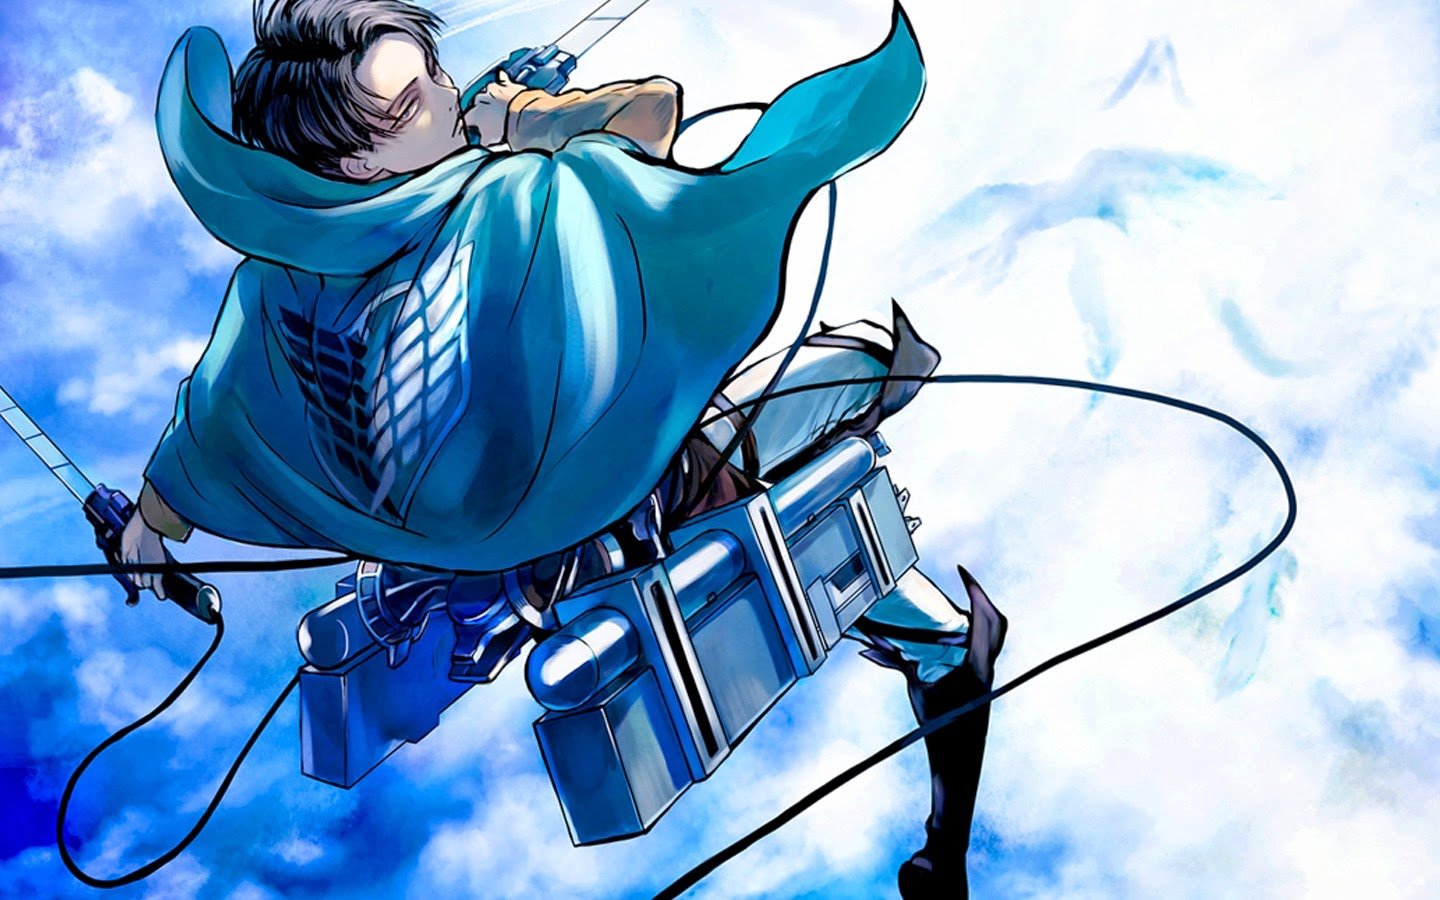 Levi Rivaille Attack on Titan Shingeki no Kyojin Anime Wallpaper 1440x900